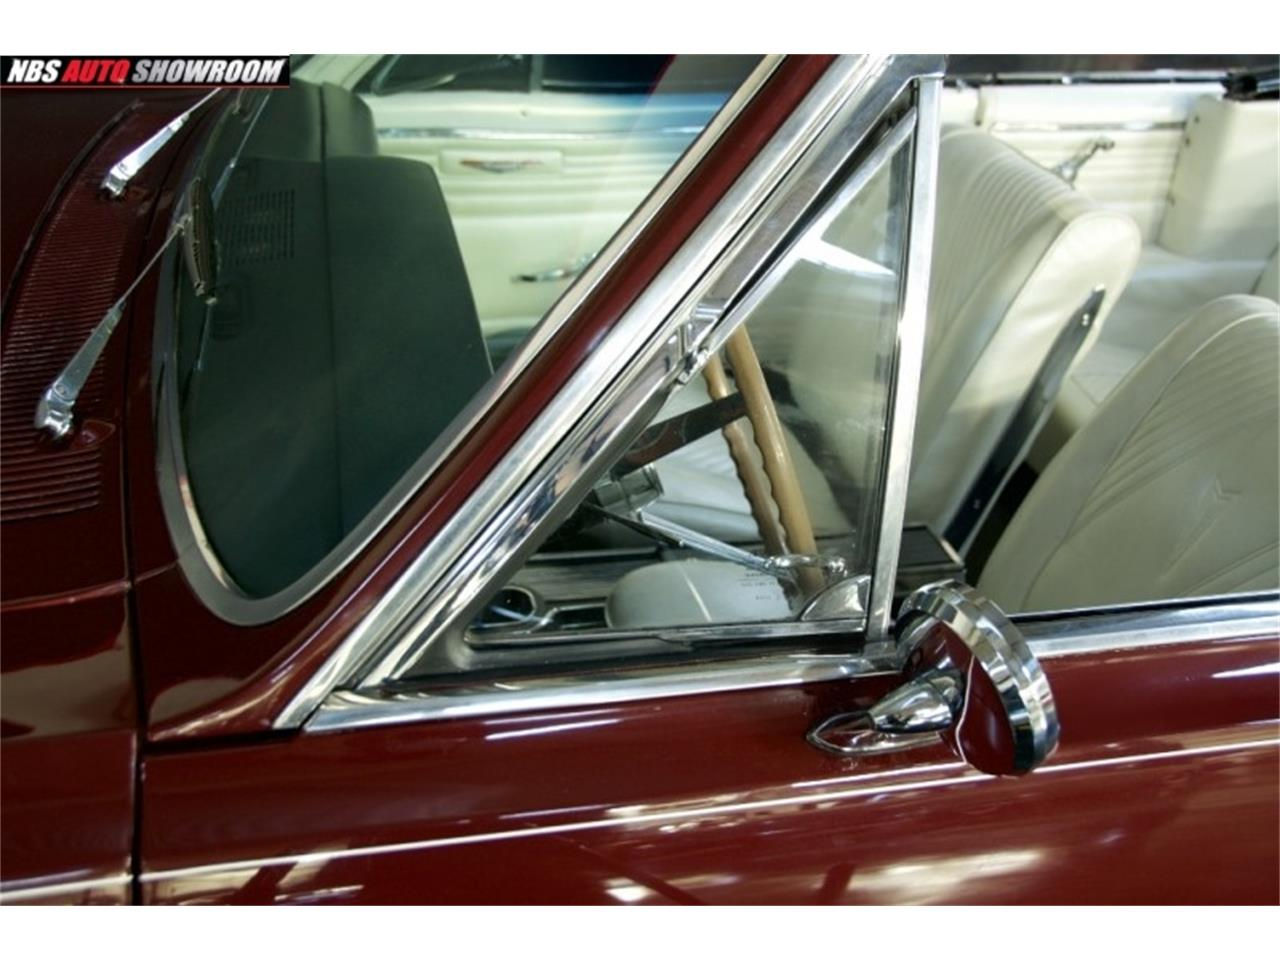 Large Picture of Classic '65 GTO Offered by NBS Auto Showroom - OWIJ